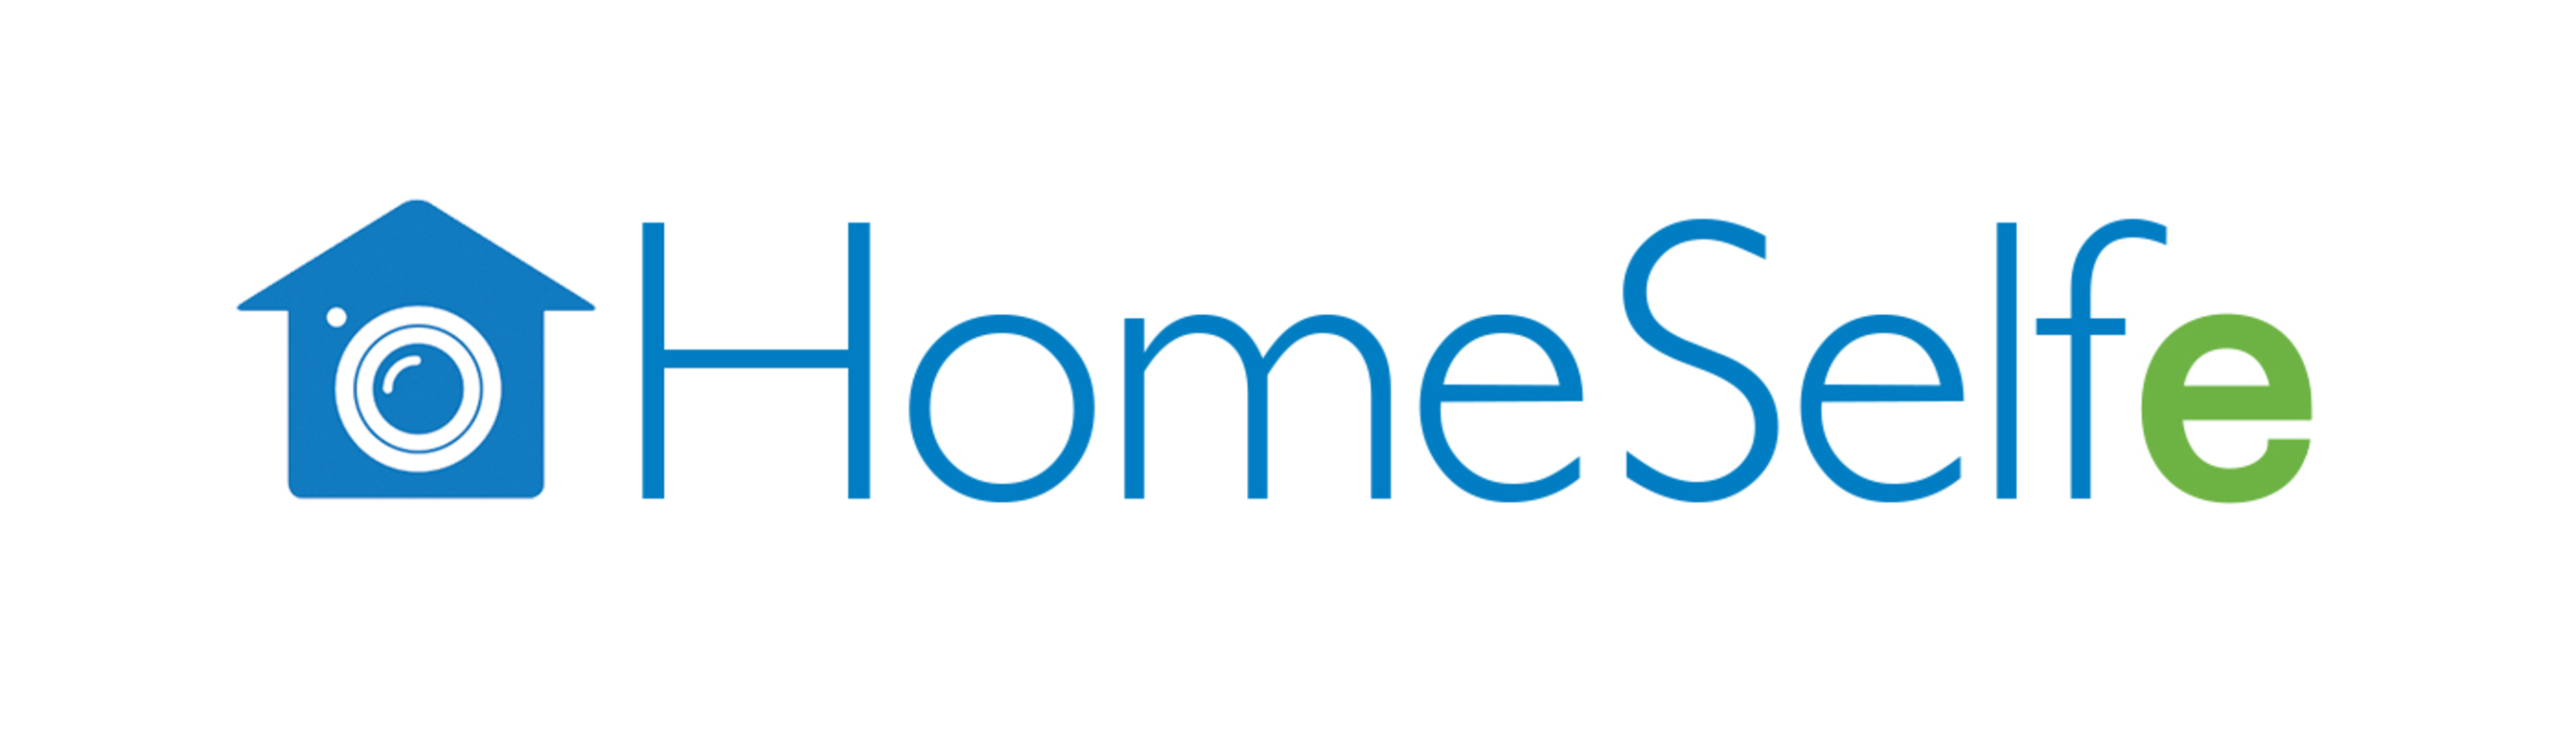 About Homeselfe: Homeselfe is the leading DIY home energy audit app, helping homeowners reduce their utility bills, energy consumption and environmental impact. Homeselfe is a fun, easy, free app that provides a clear path to an energy efficient home with a personalized money saving plan, available rebates, and access to local qualified contractors. Founded in 2014, Homeselfe was created as a patent pending technology by Energy Datametrics, one the leading providers of cutting-edge energy efficiency software and technology services.